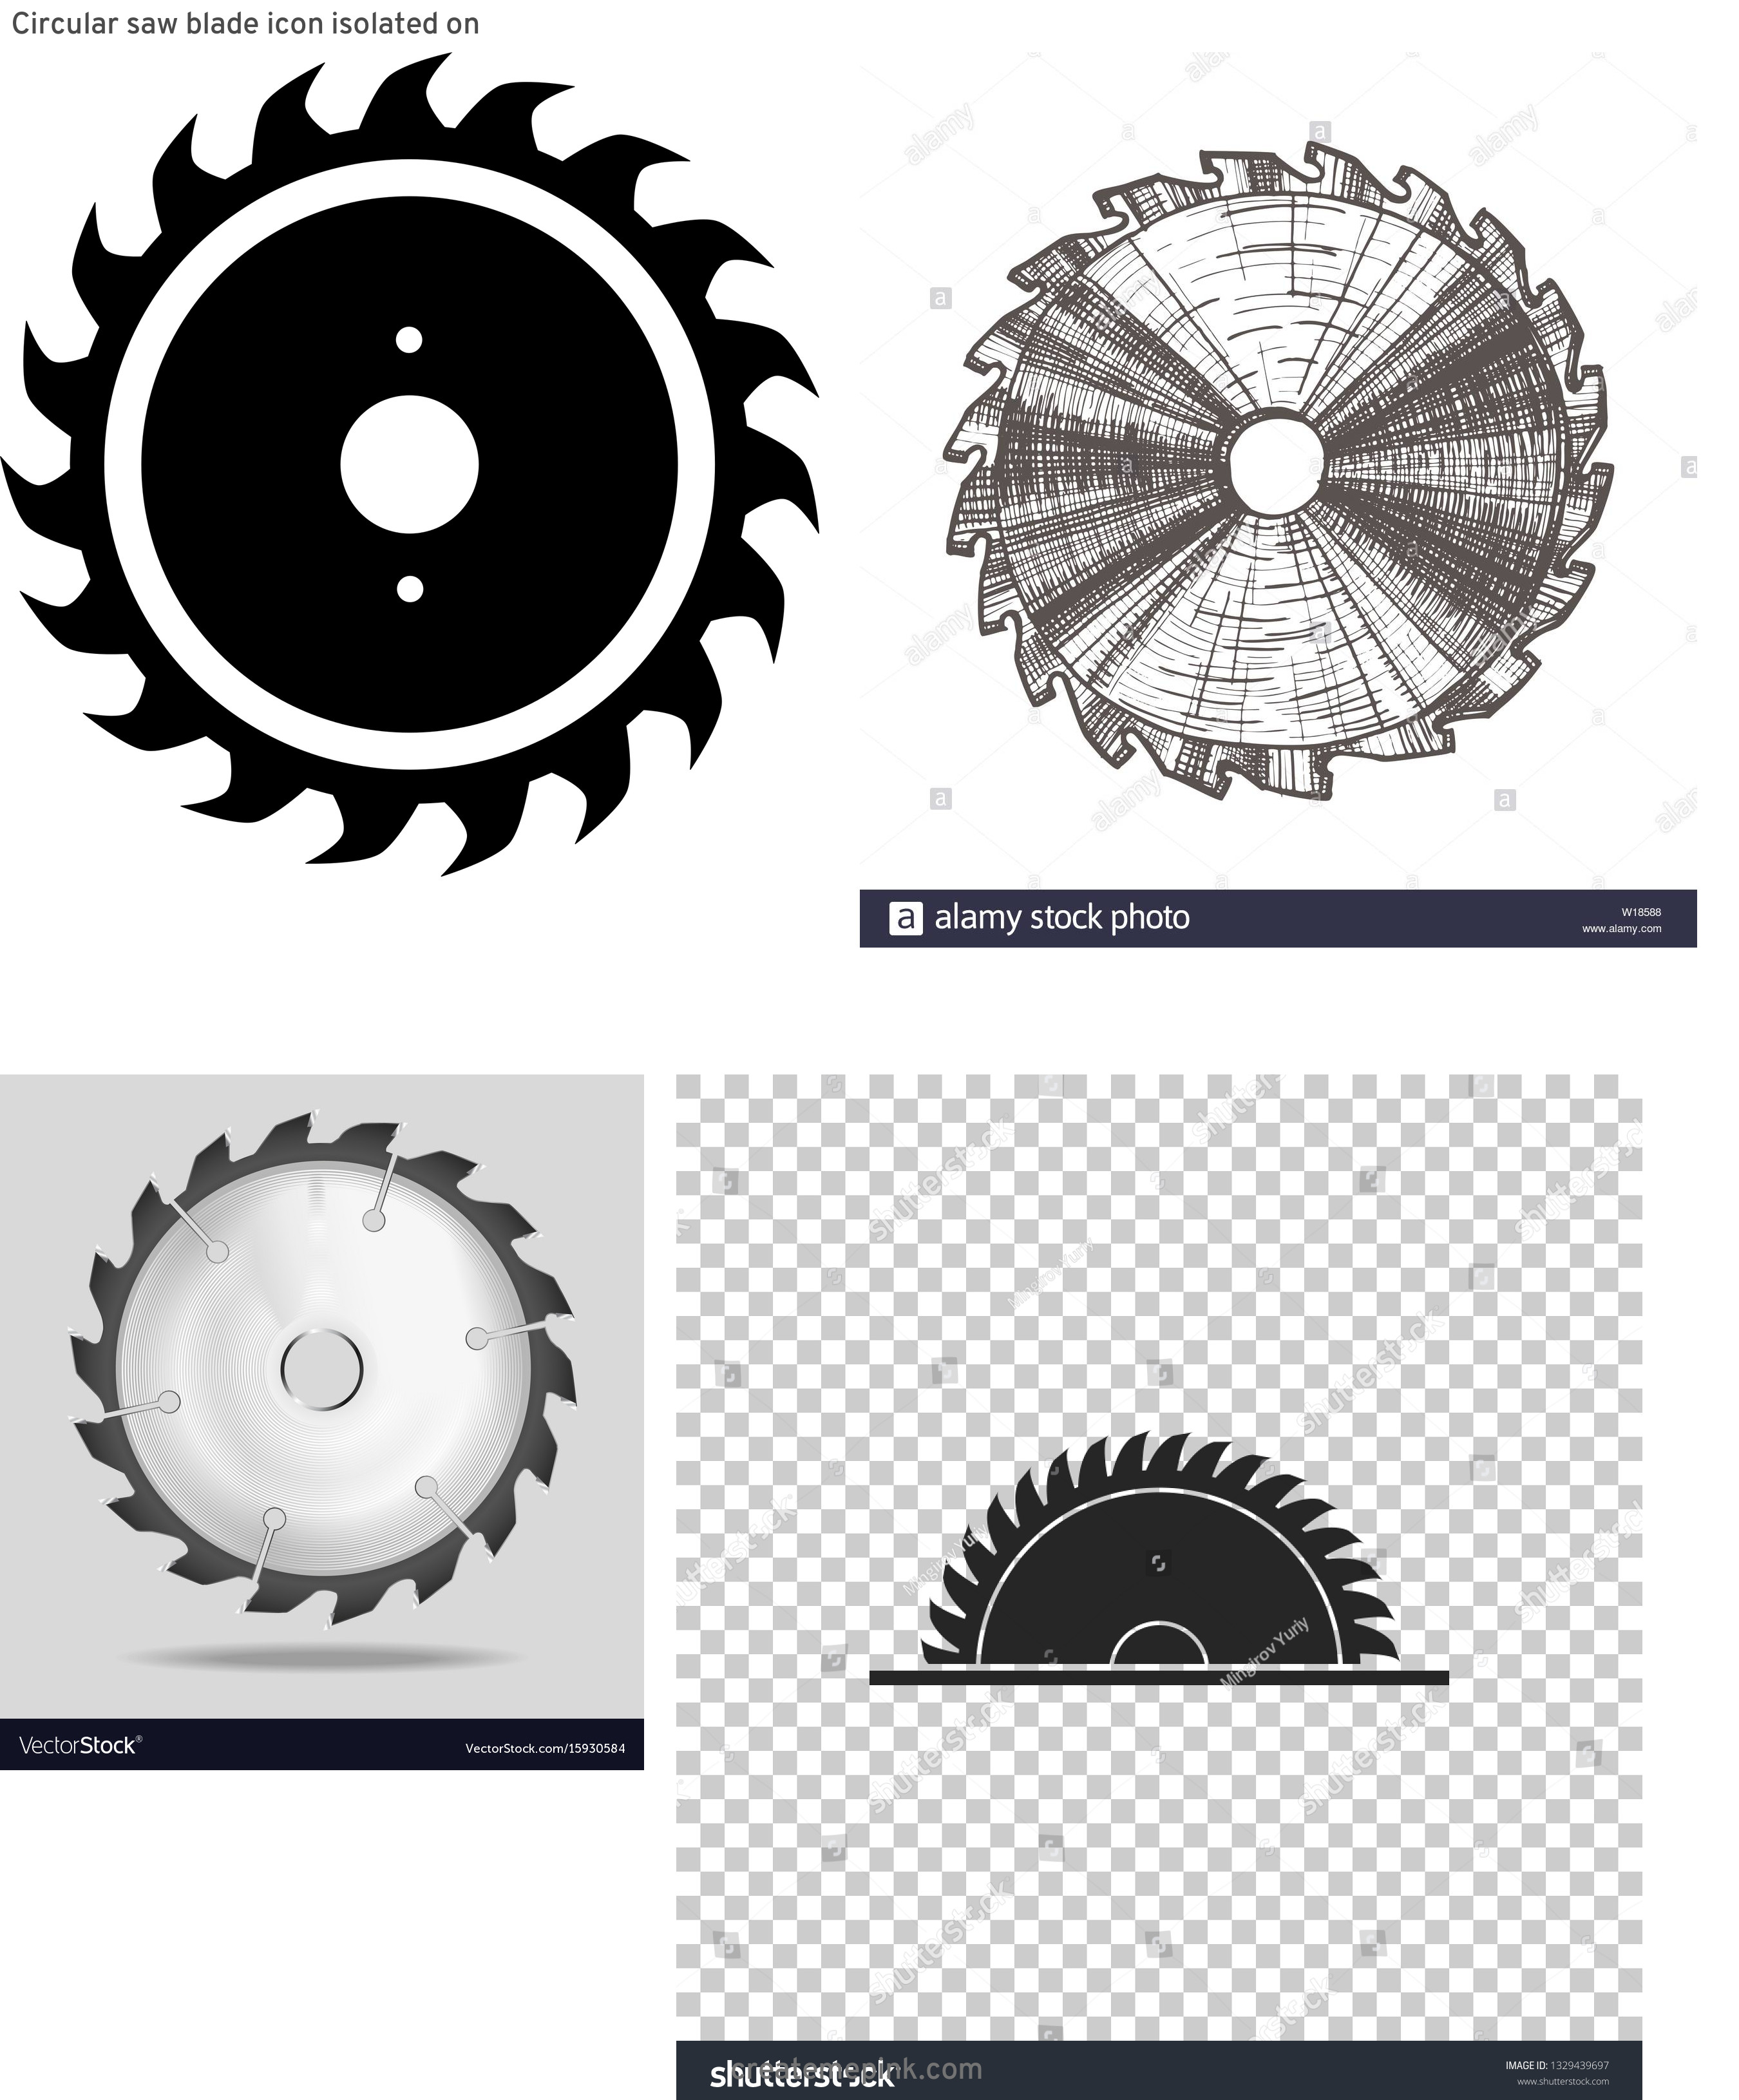 Round Saw Blade Vector: Circular Saw Blade Icon Isolated On